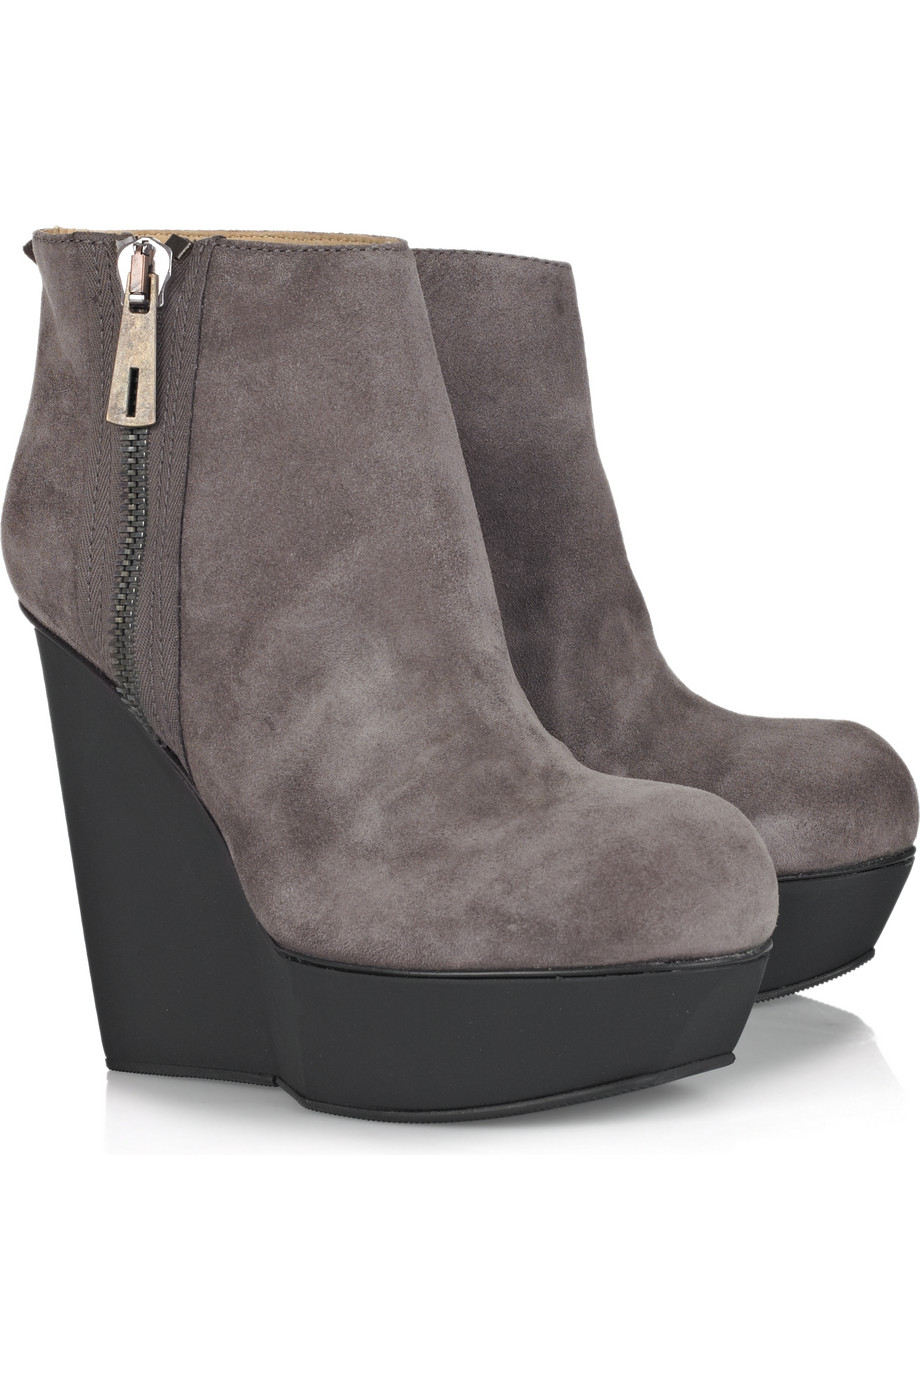 acne studios hybria suede wedge boots in gray smog lyst